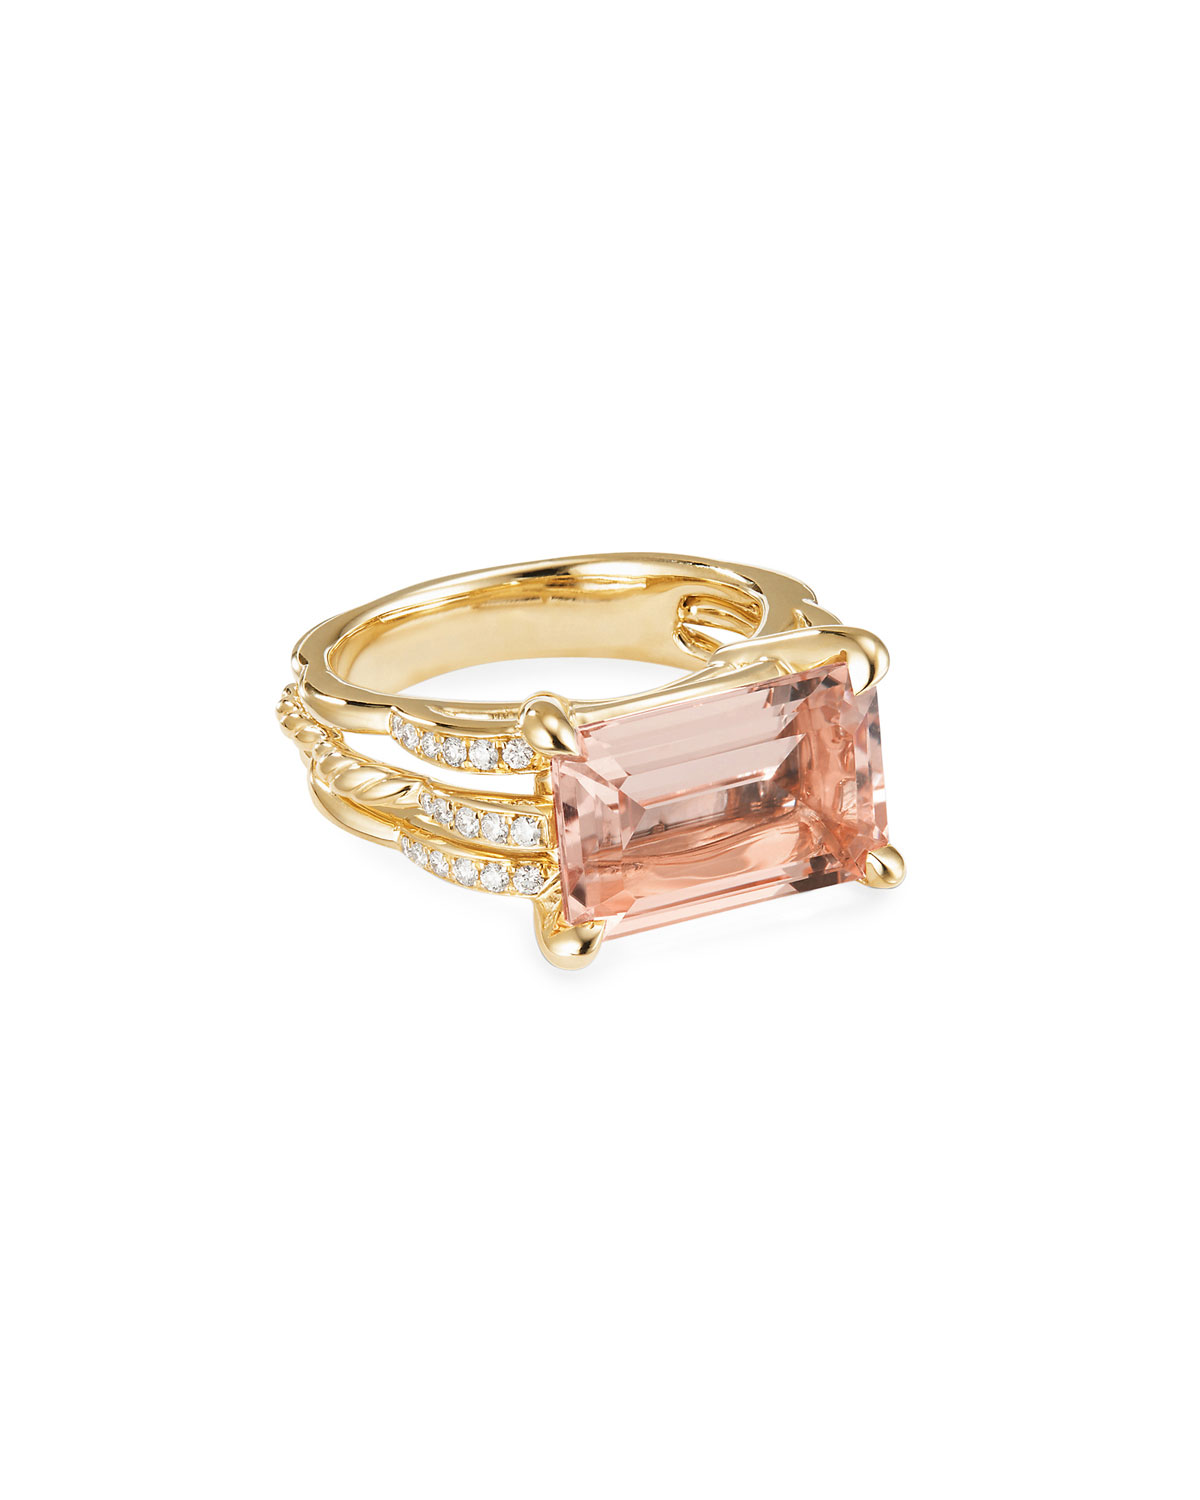 David Yurman Tides 18k Gold Diamond & Morganite Ring, Size 6